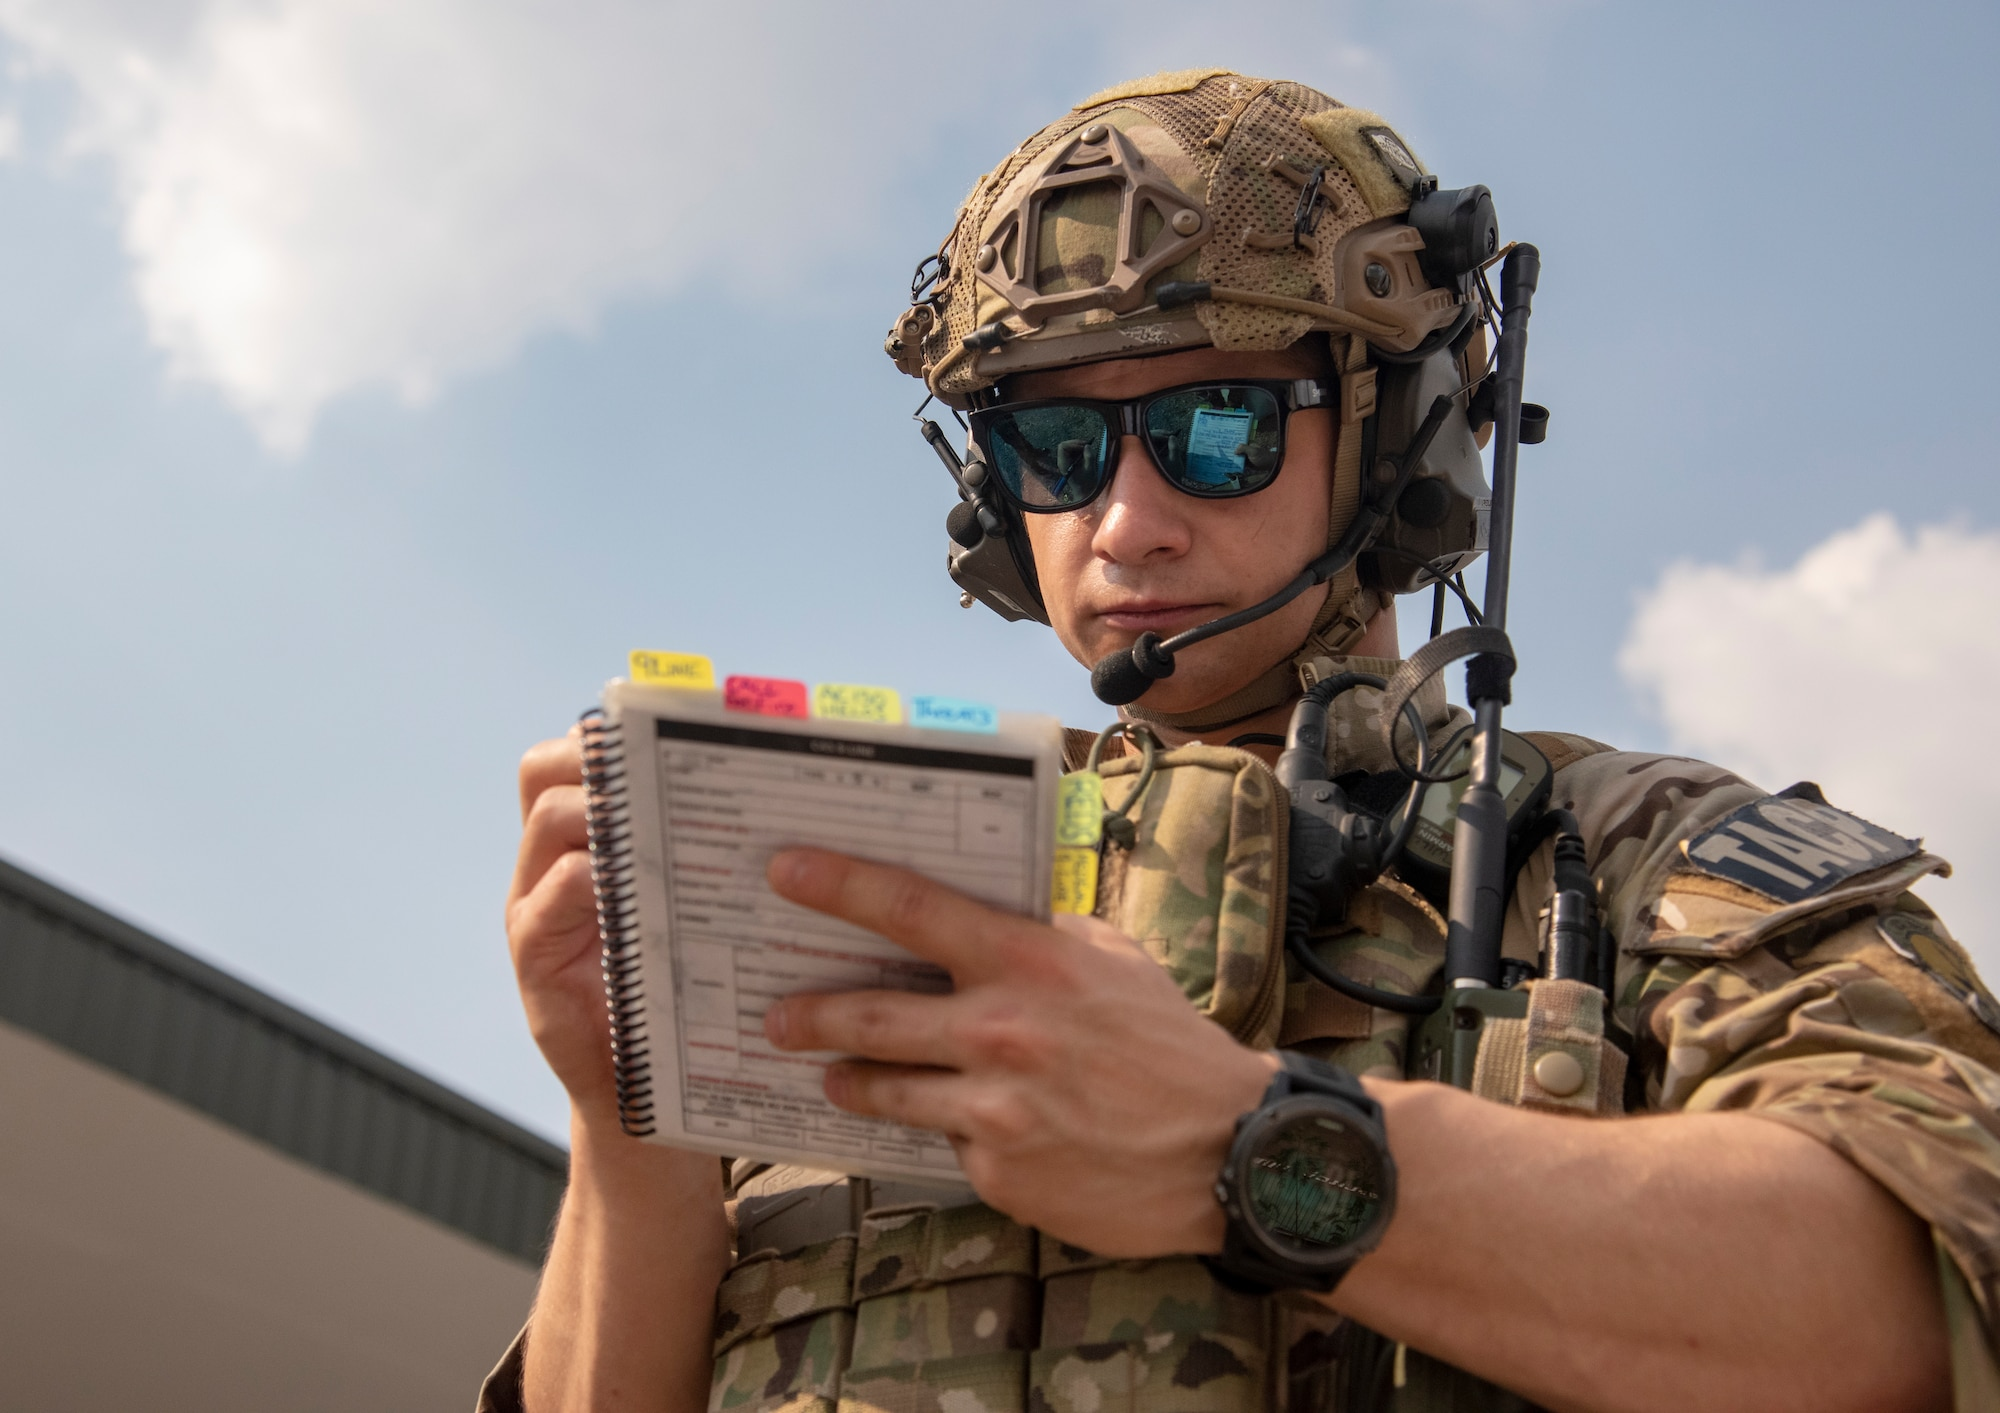 U.S. Air Force Staff Sgt. Tim Williams, tactical air control party joint terminal attack controller assigned to the 116th Air Support Operations Squadron, Washington Air National Guard, reviews tactics and procedures prior to calling in a simulated close air support attack during COPE Tiger 19 at Royal Thai Air Force Chandy Range, Thailand, March 15, 2019.